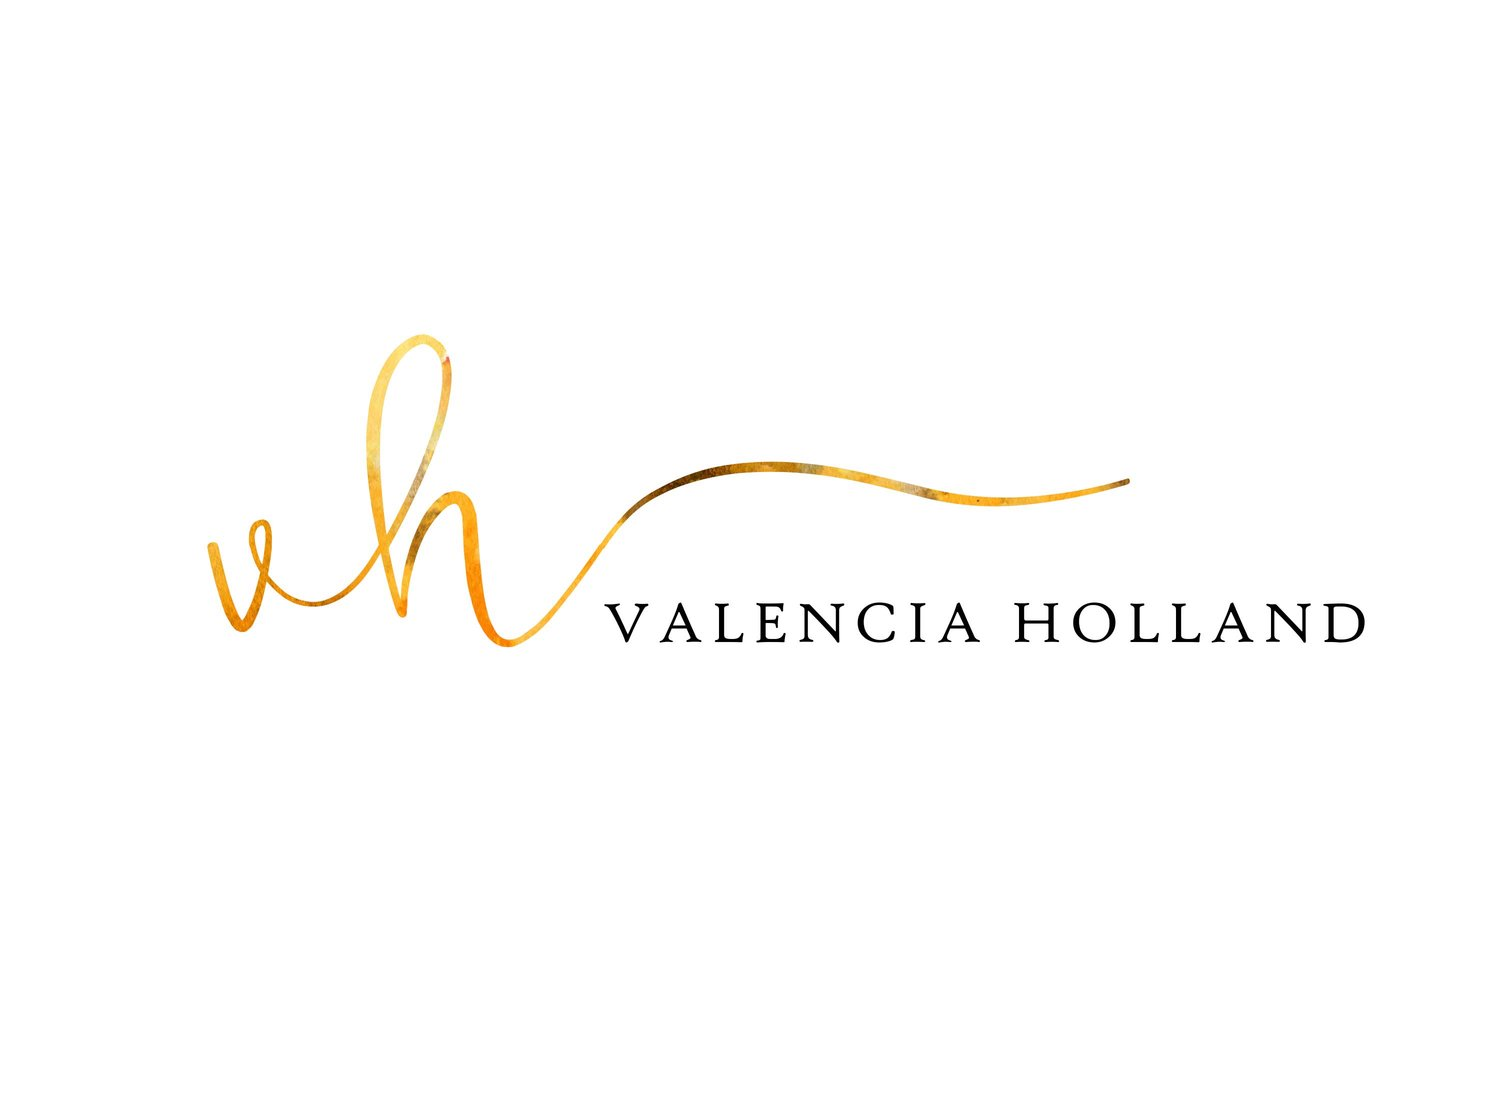 Valencia Holland